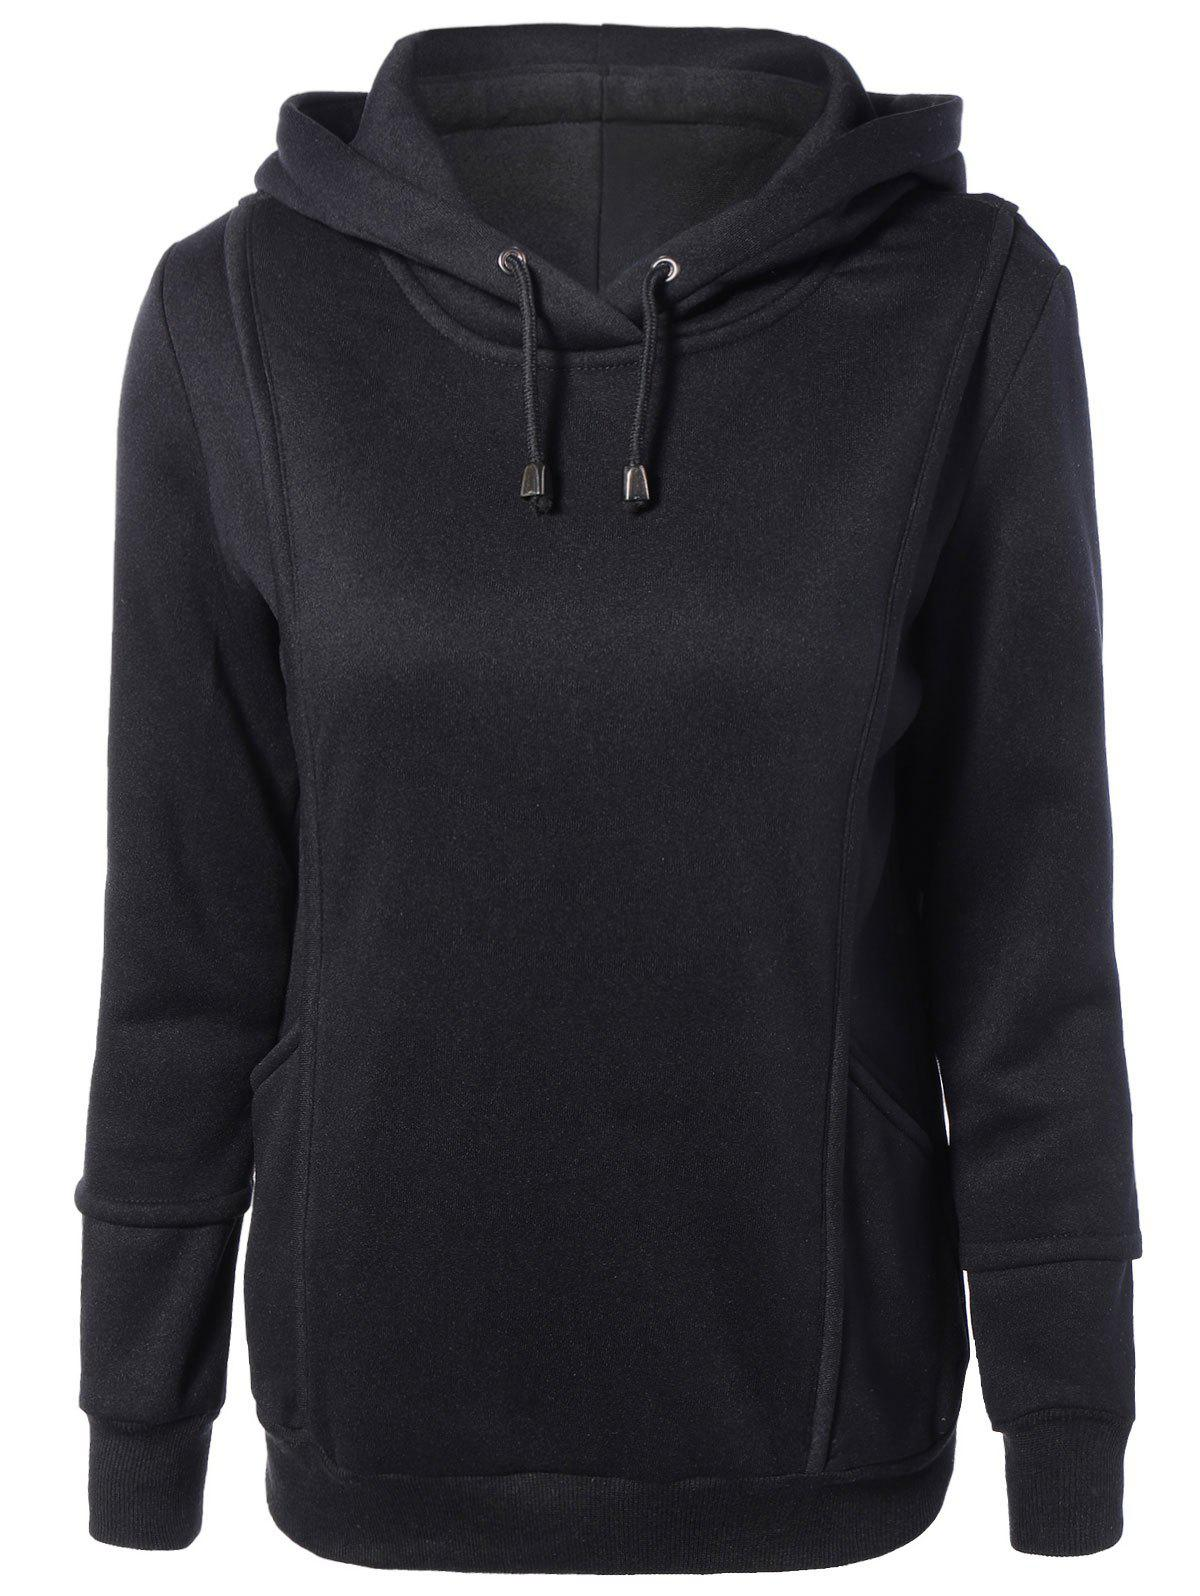 Spliced Long Sleeve Drawstring Hoodie